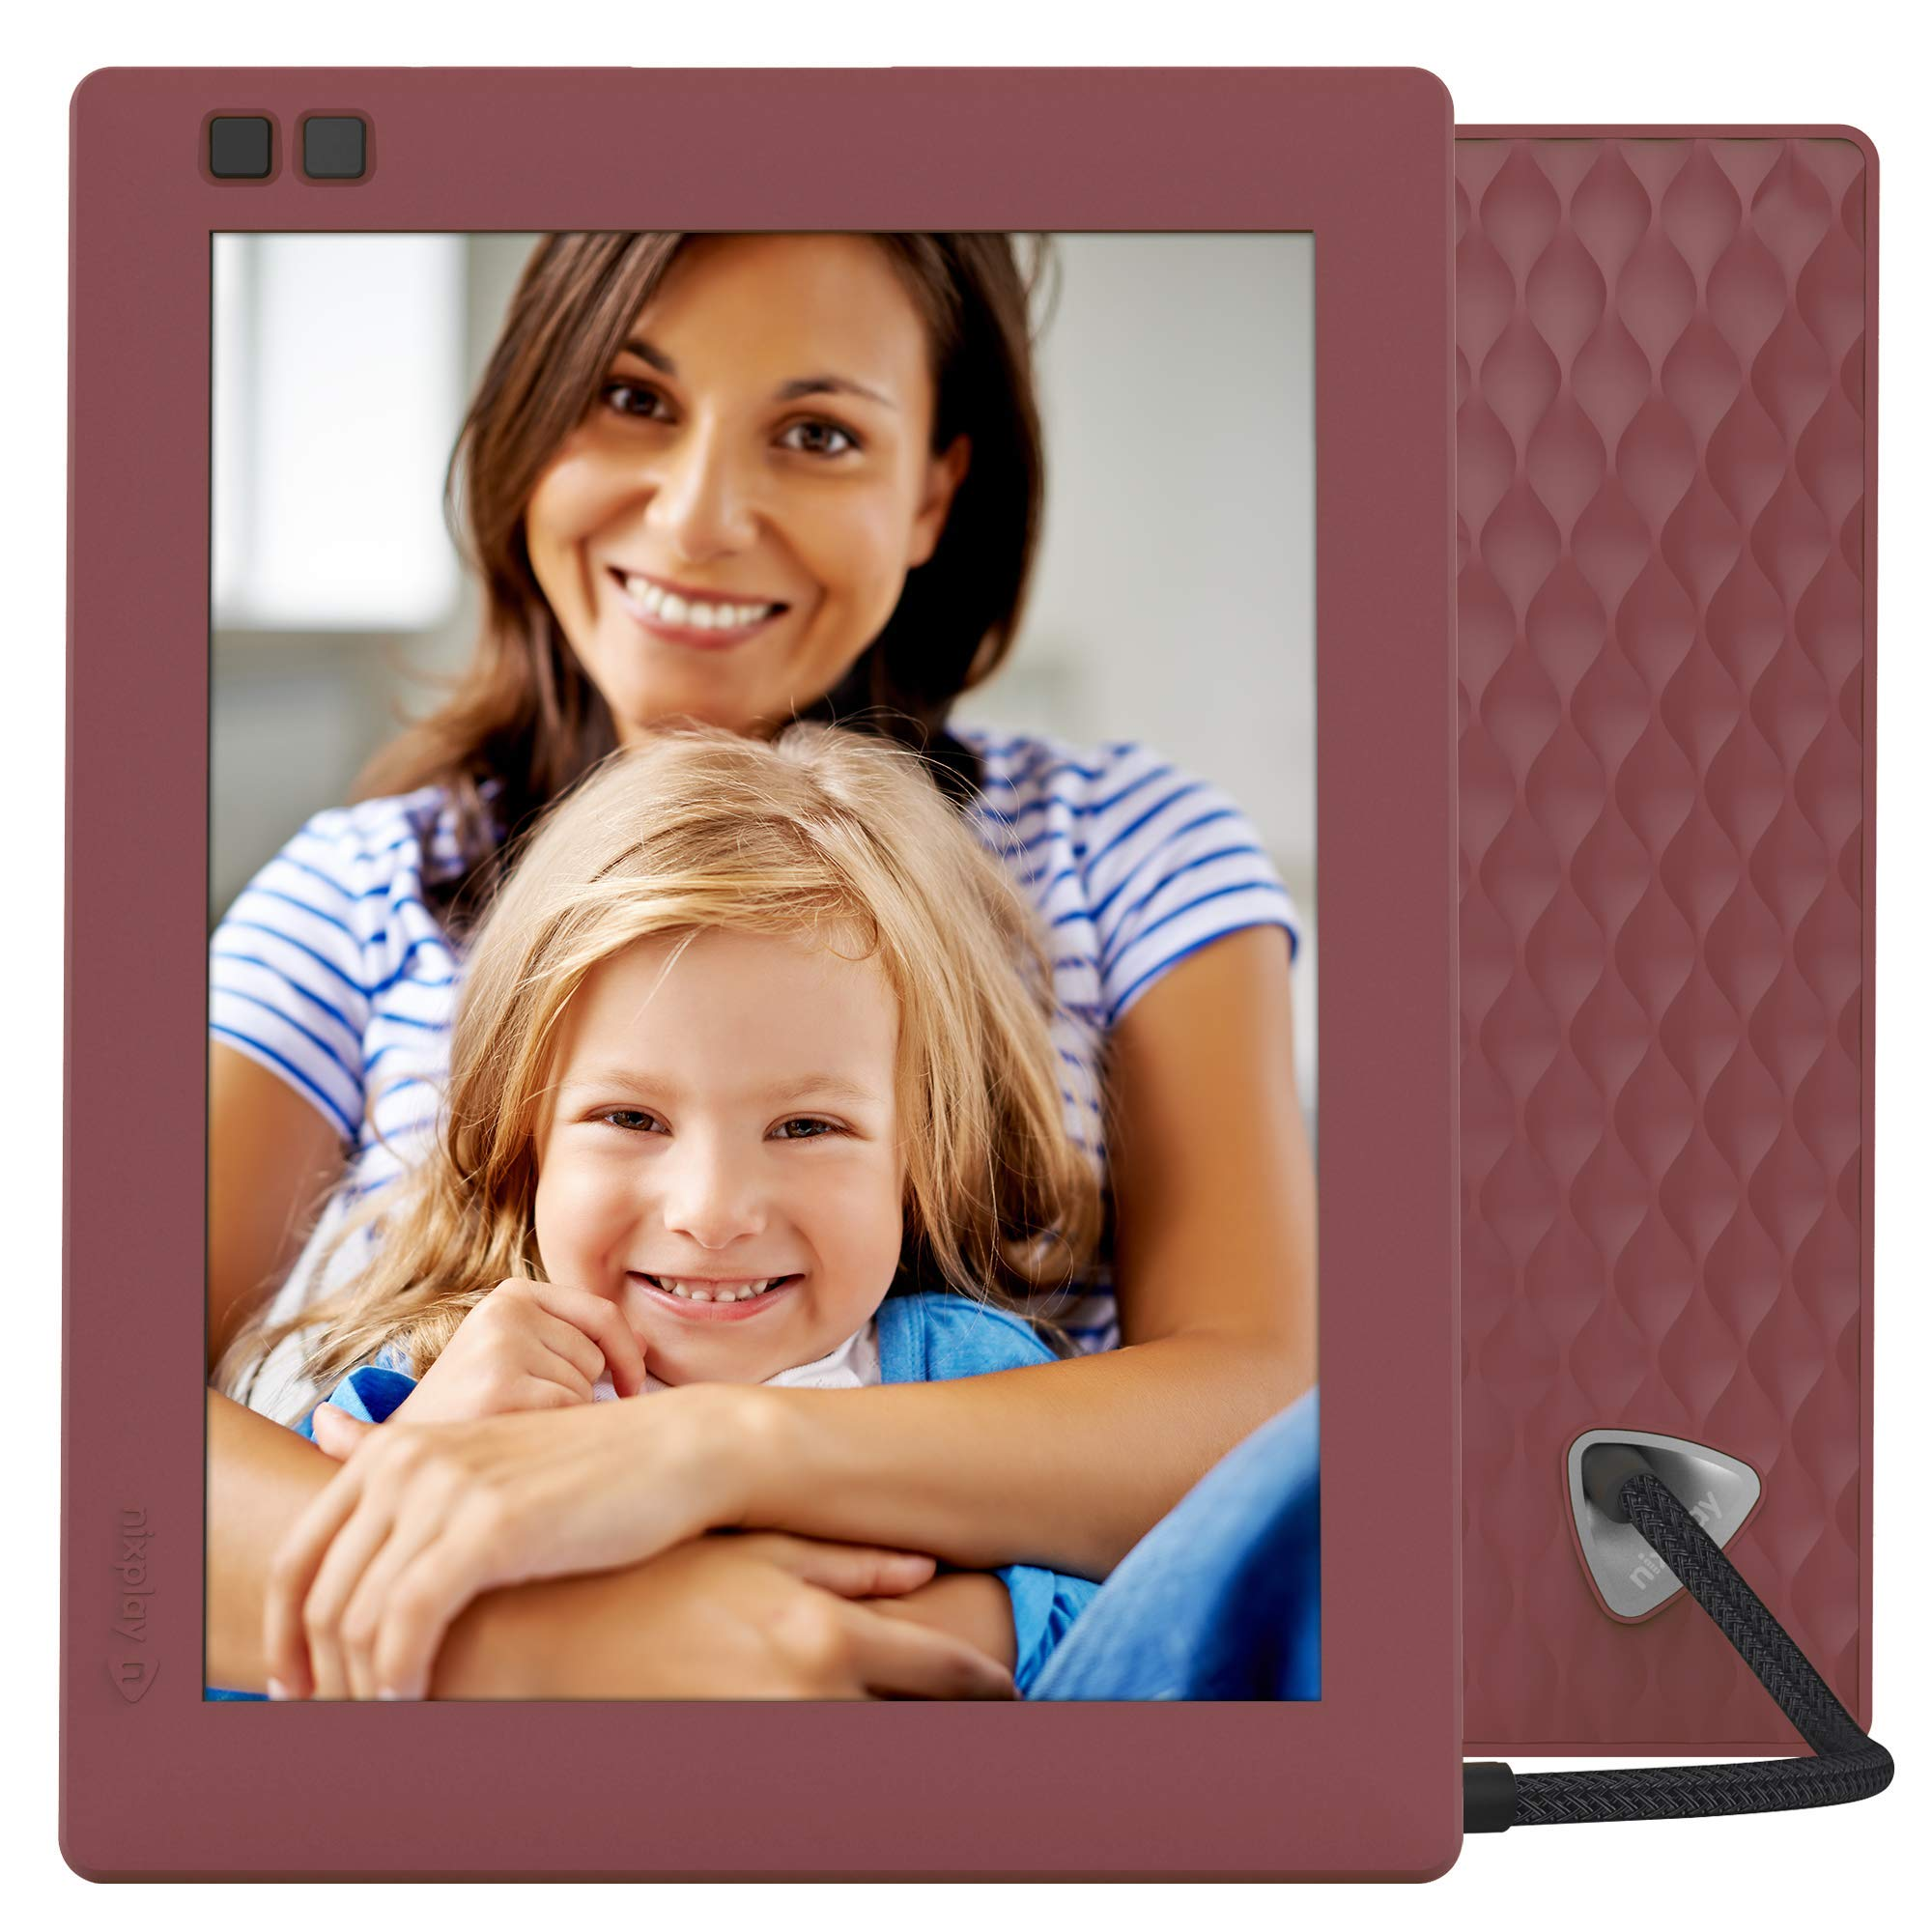 Wall-Mountable Digital Picture Frame with Motion Sensor and 10GB Online Storage Nixplay Original 15 Inch Digital WiFi Photo Frame W15A Display and Share Photos with Friends via Nixplay Mobile App